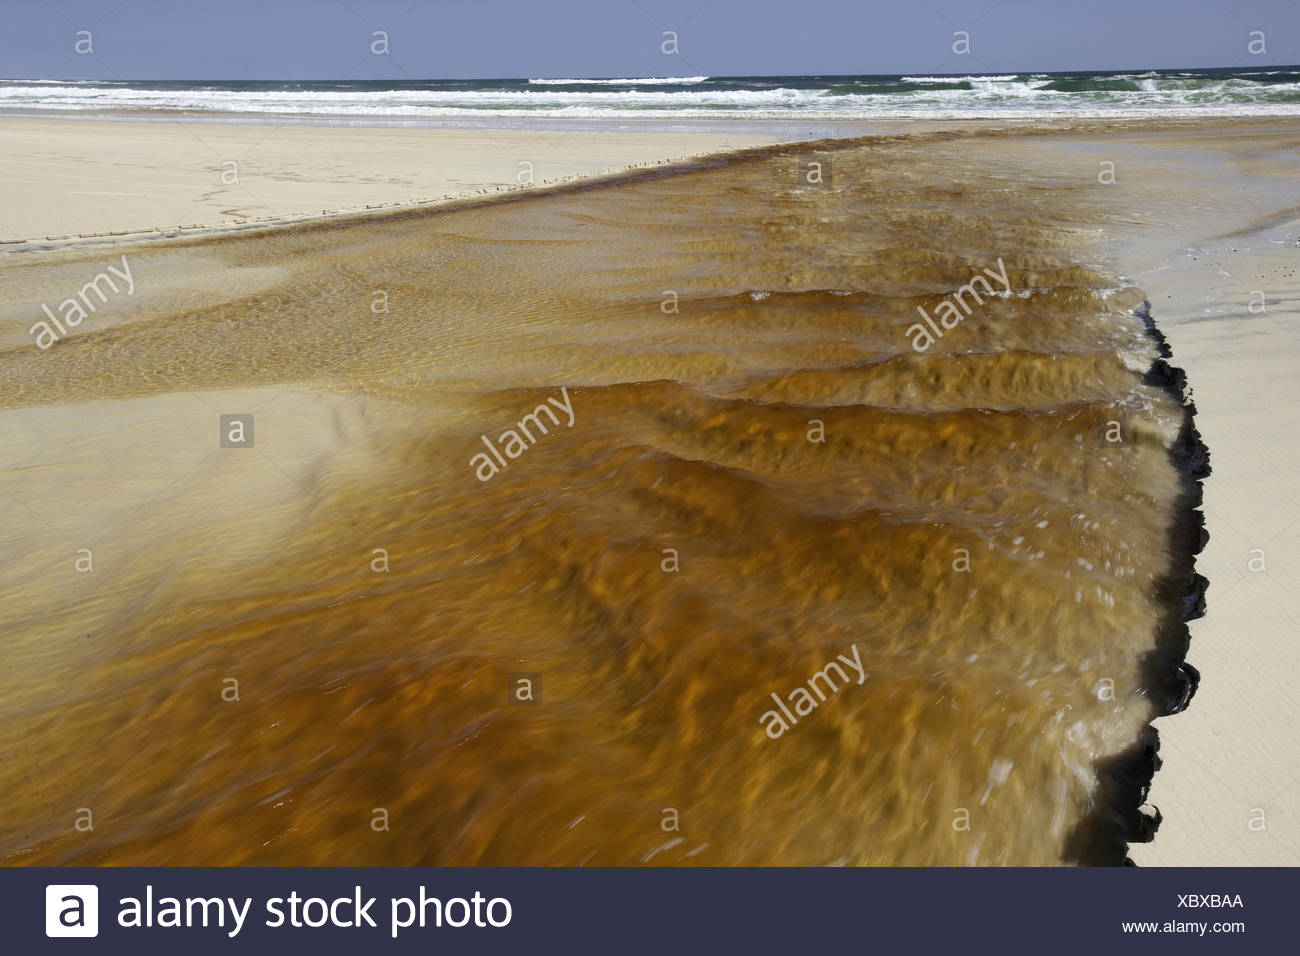 Tannin water from a creek flowing into the ocean in the southern part of the island,  Fraser Island, Australia. Stock Photo